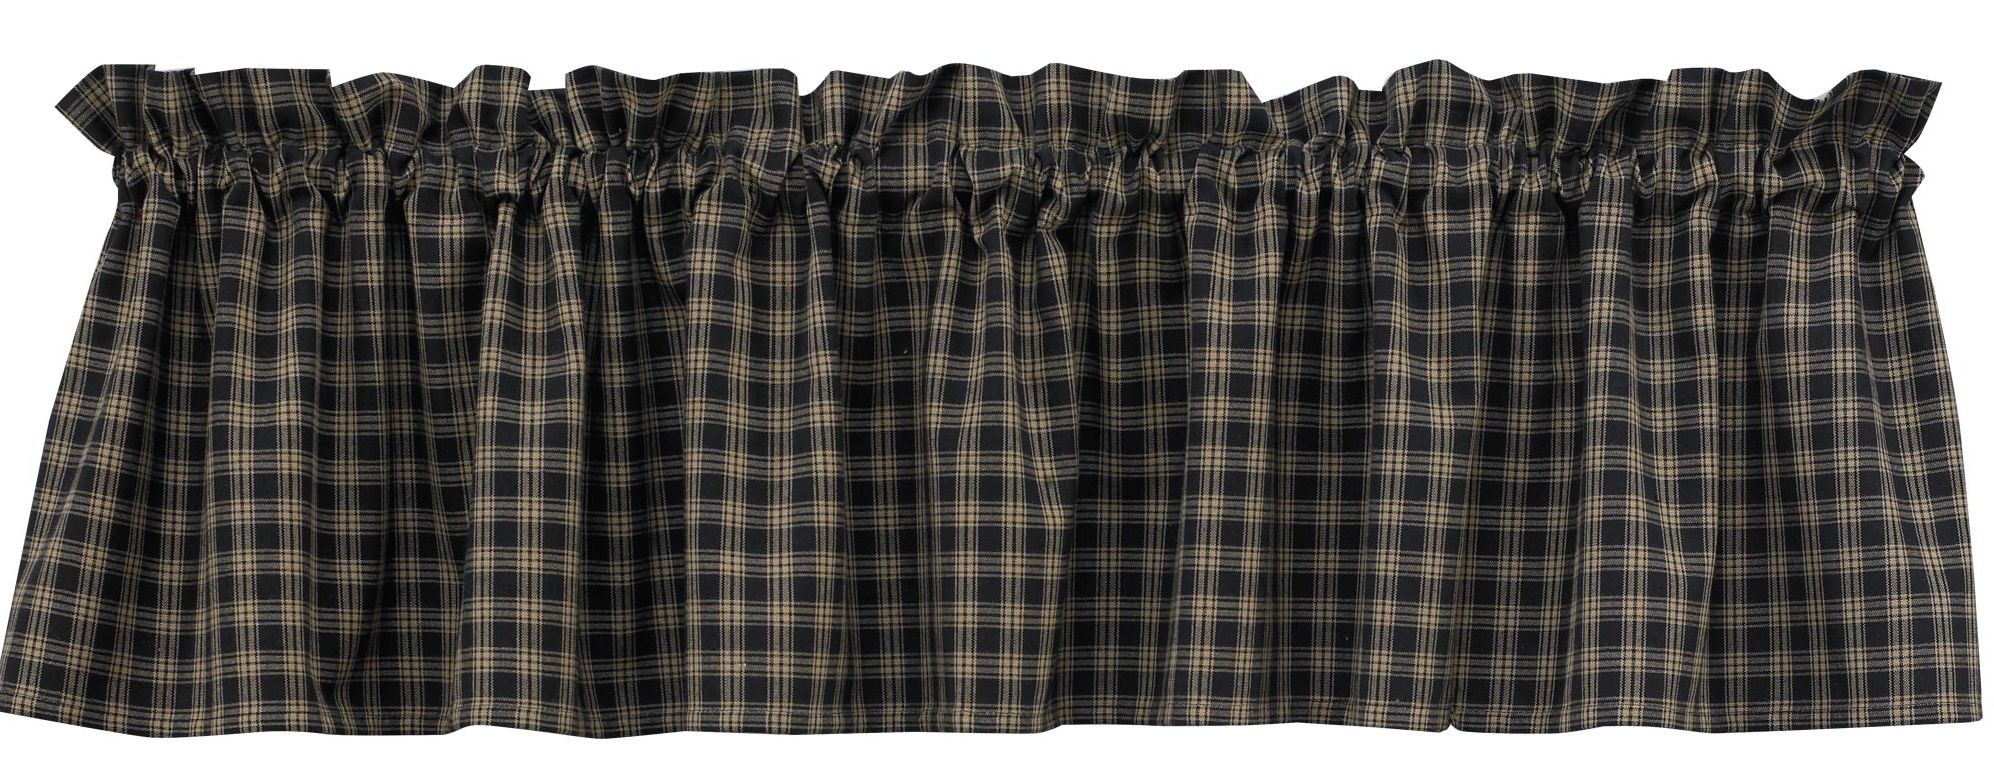 PKD-315-VL-R-Sturbridge-Black-Curtain-Valance-LRG